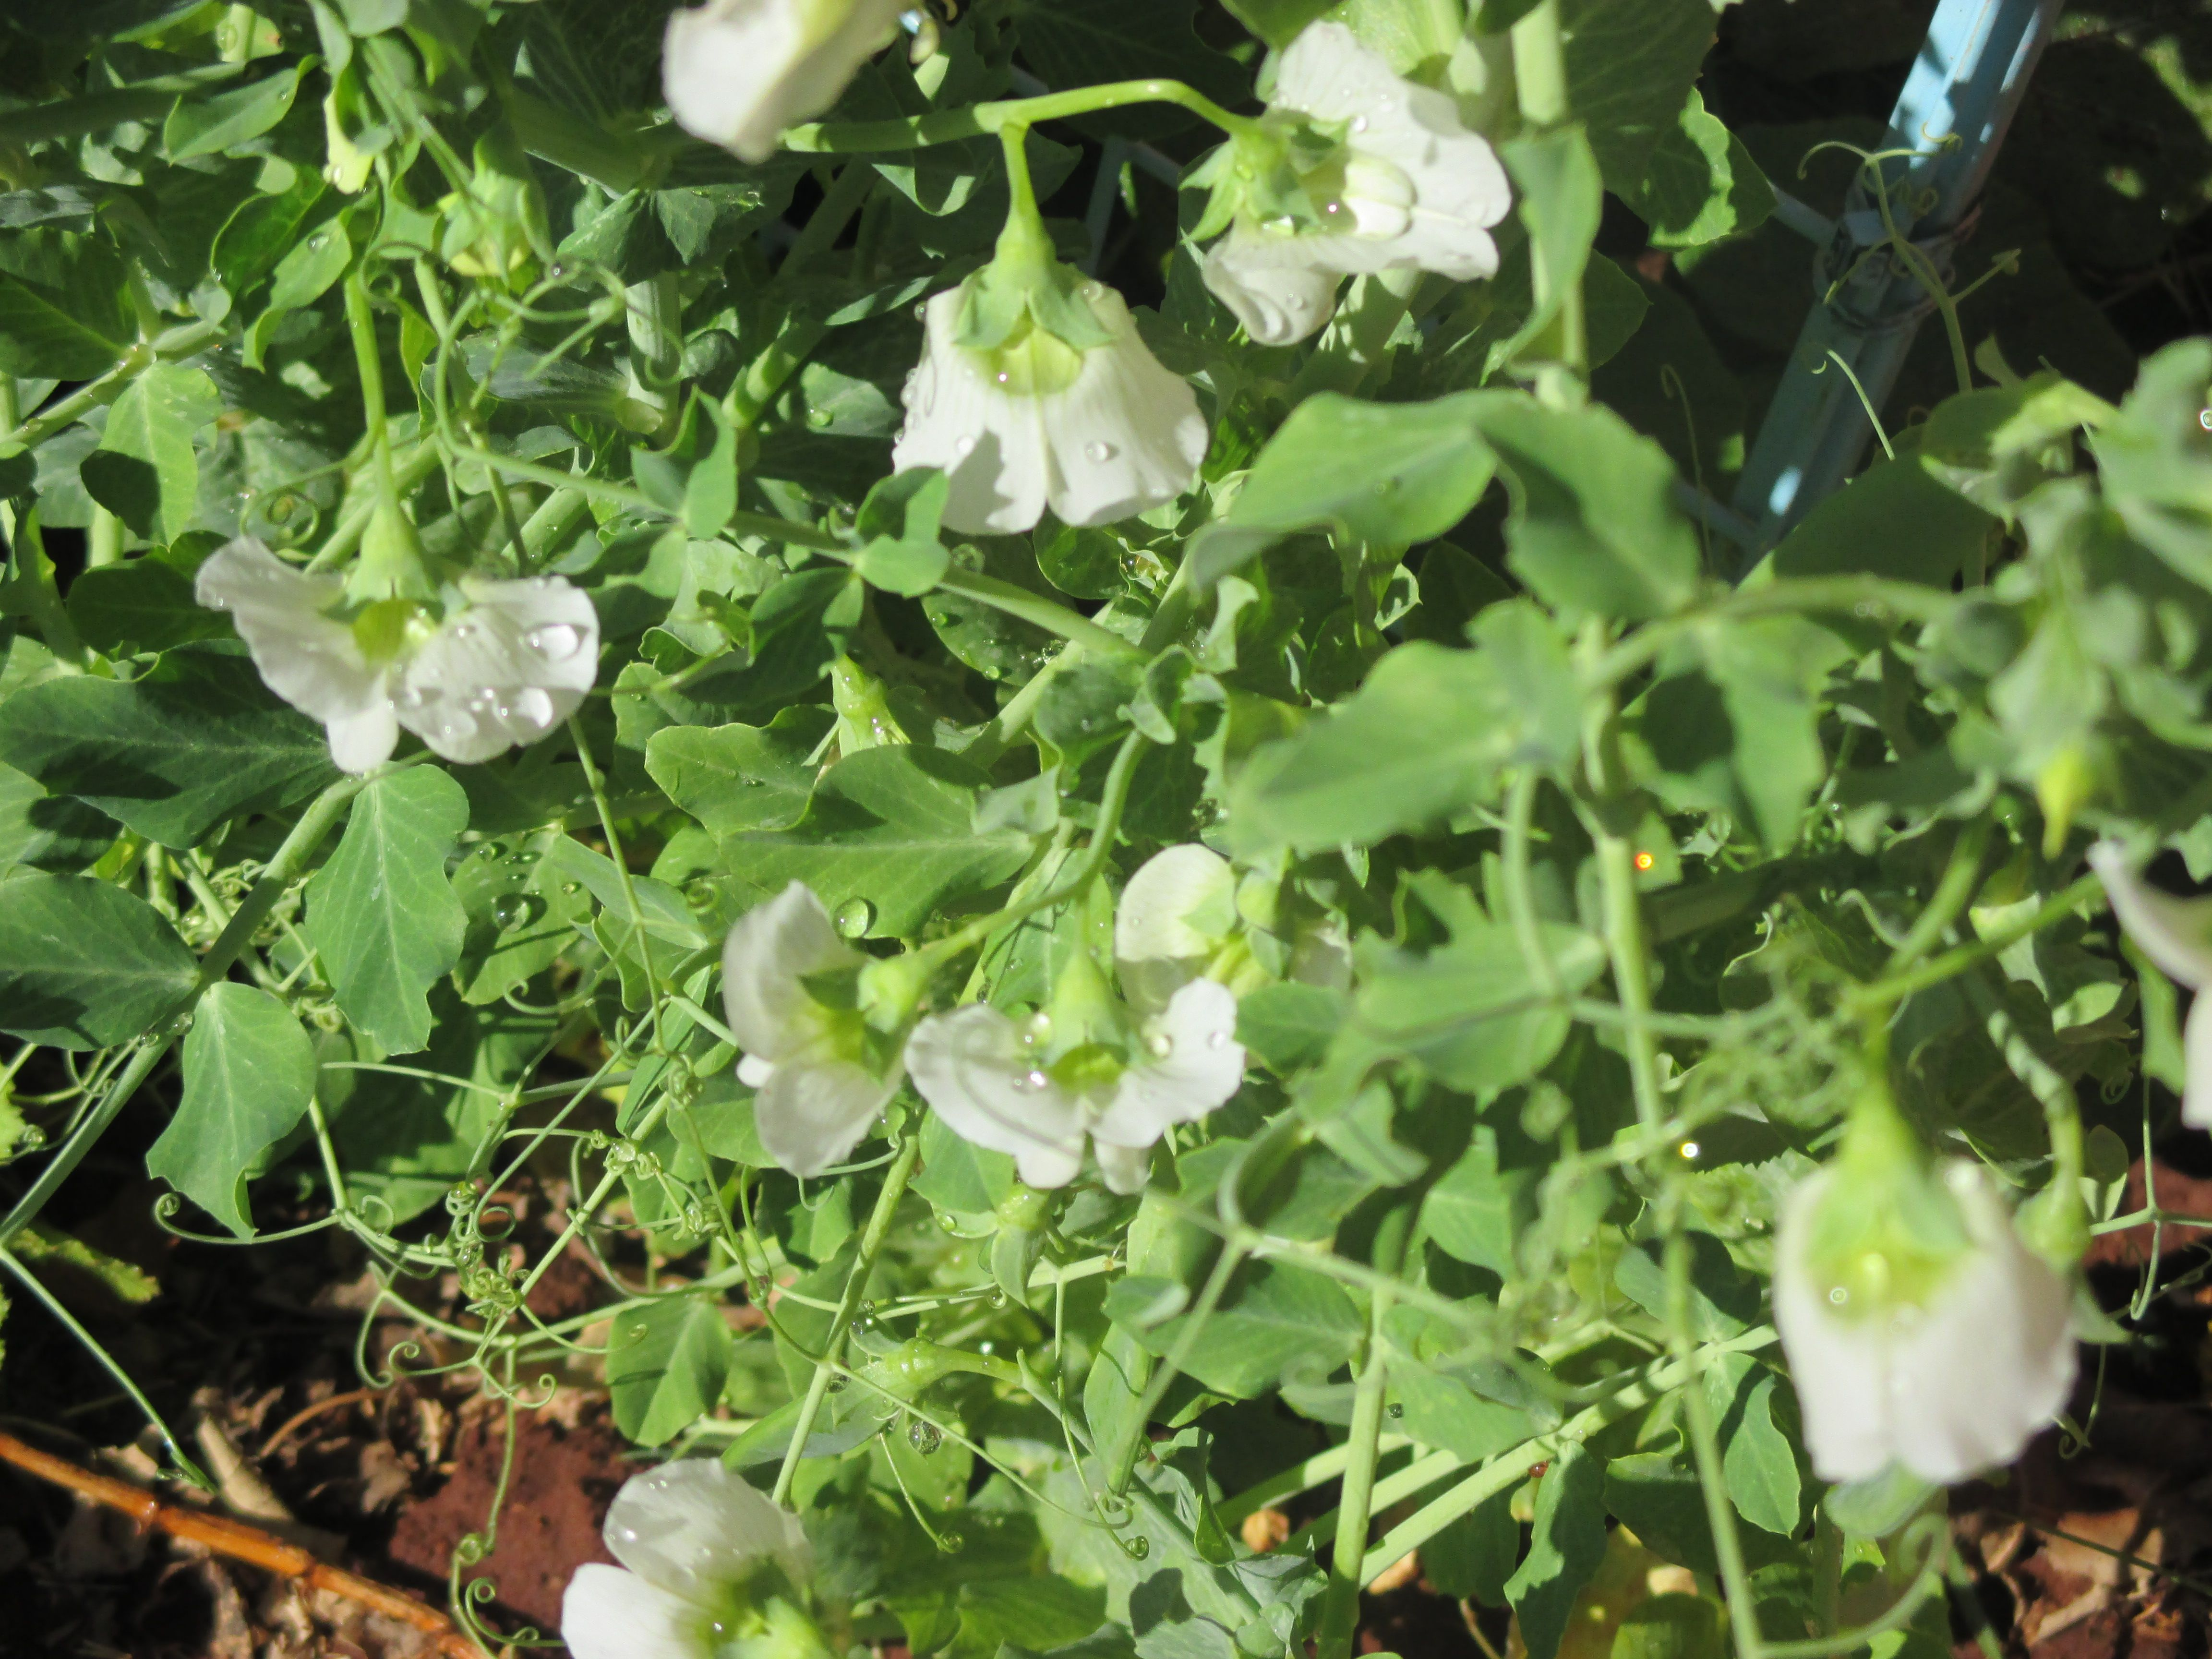 Abundant Blooms: All the love and care makes little flowers grow